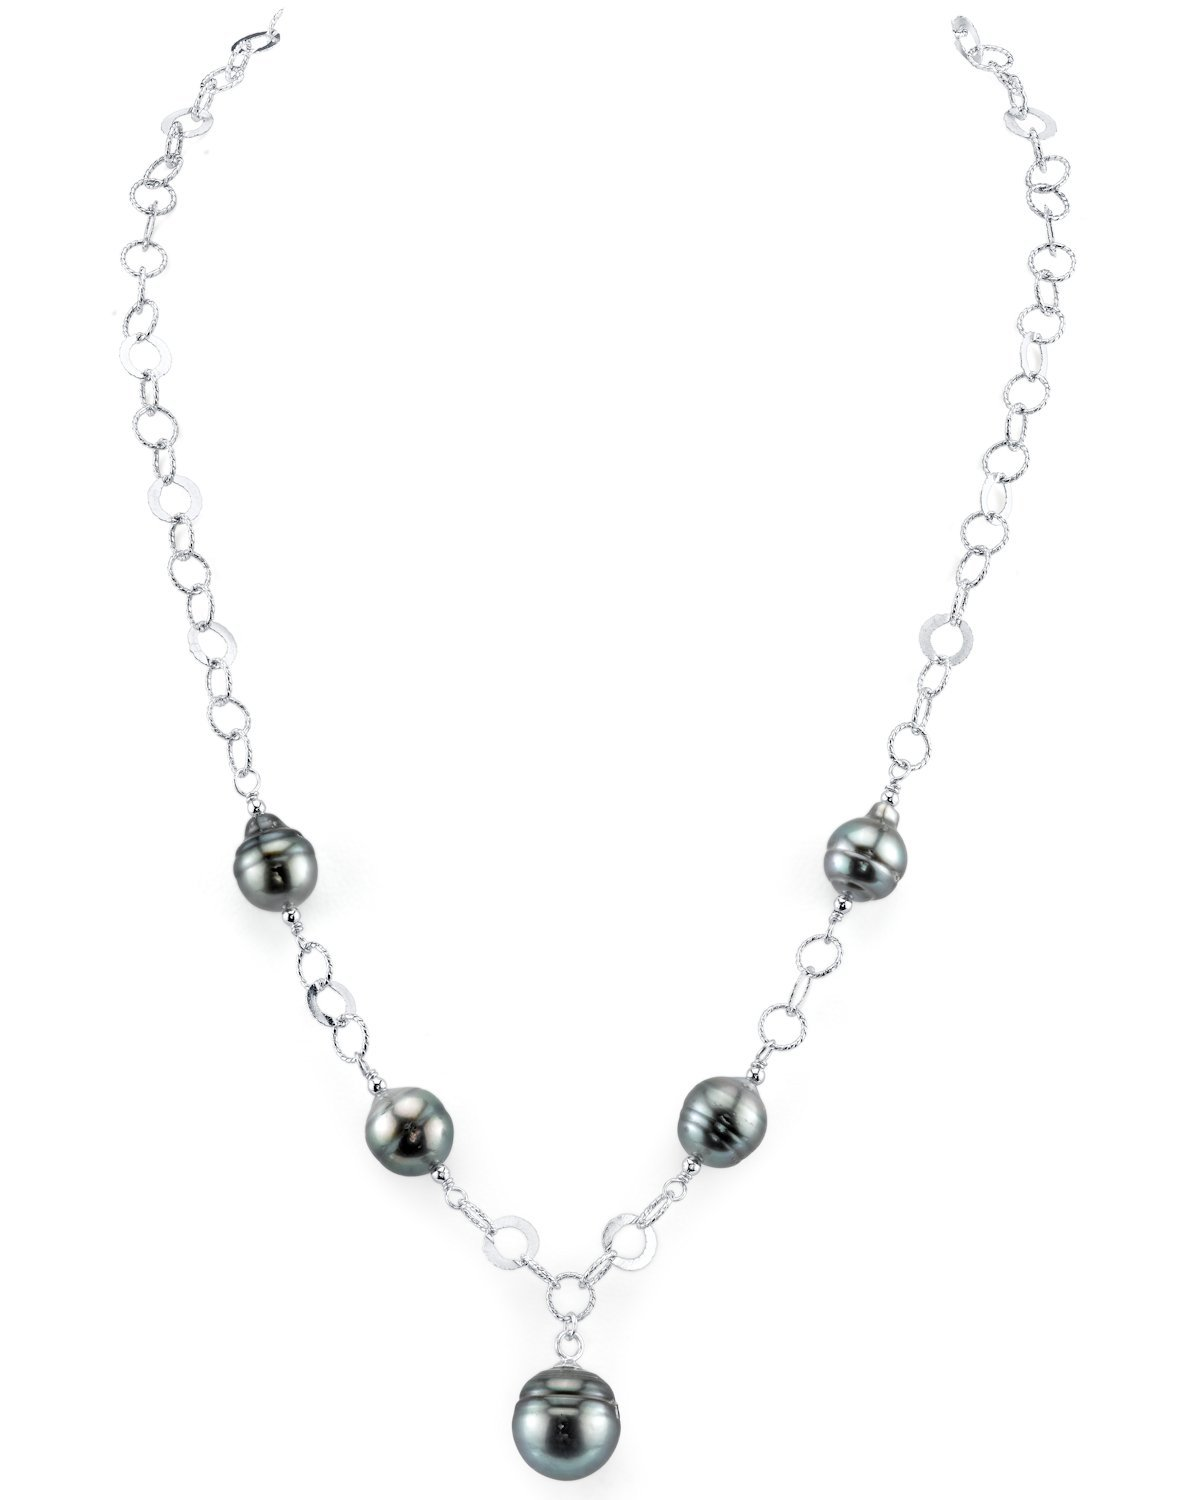 THE PEARL SOURCE 8-9mm Genuine Baroque Black Tahitian South Sea Cultured Pearl Necklace for Women by The Pearl Source